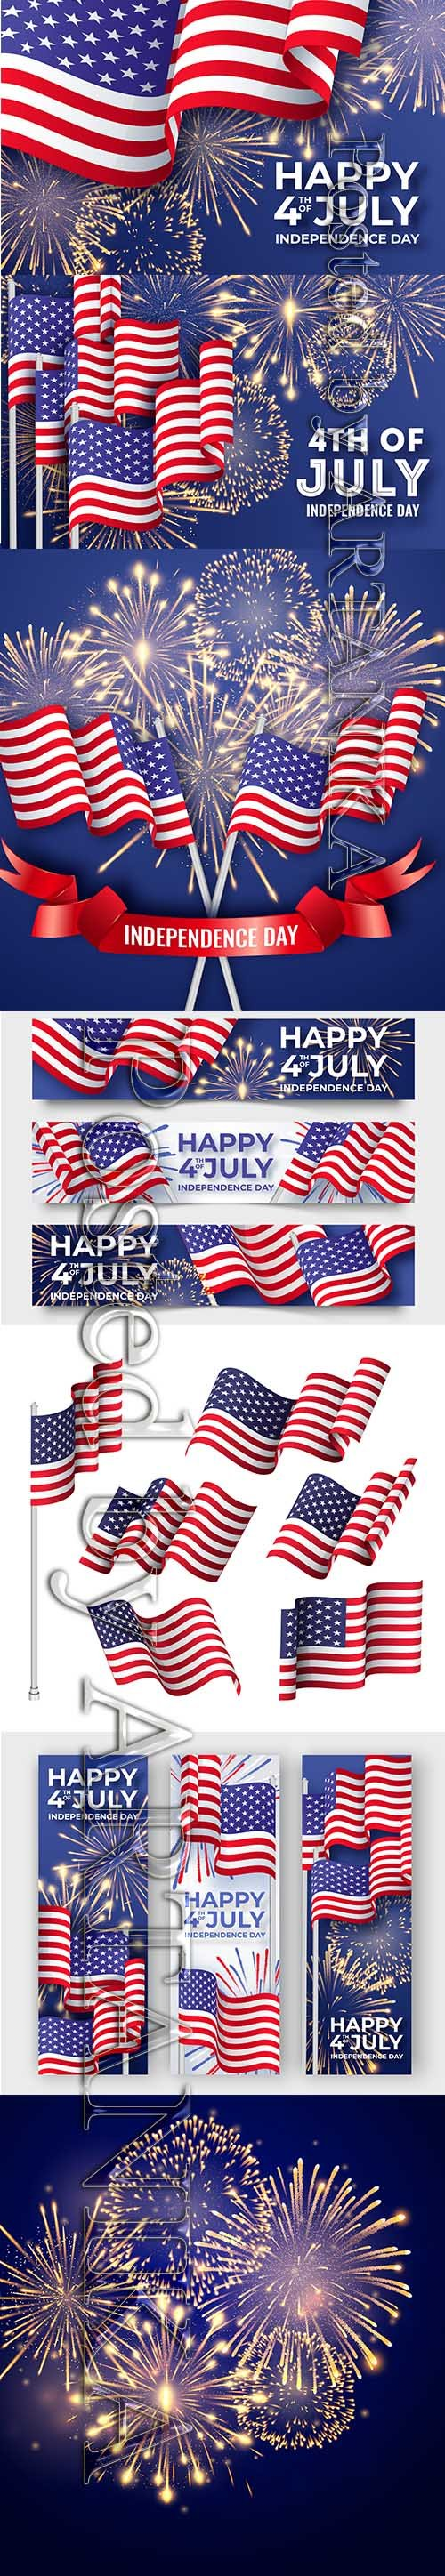 Independence Day USA with American National Flags Vector Set